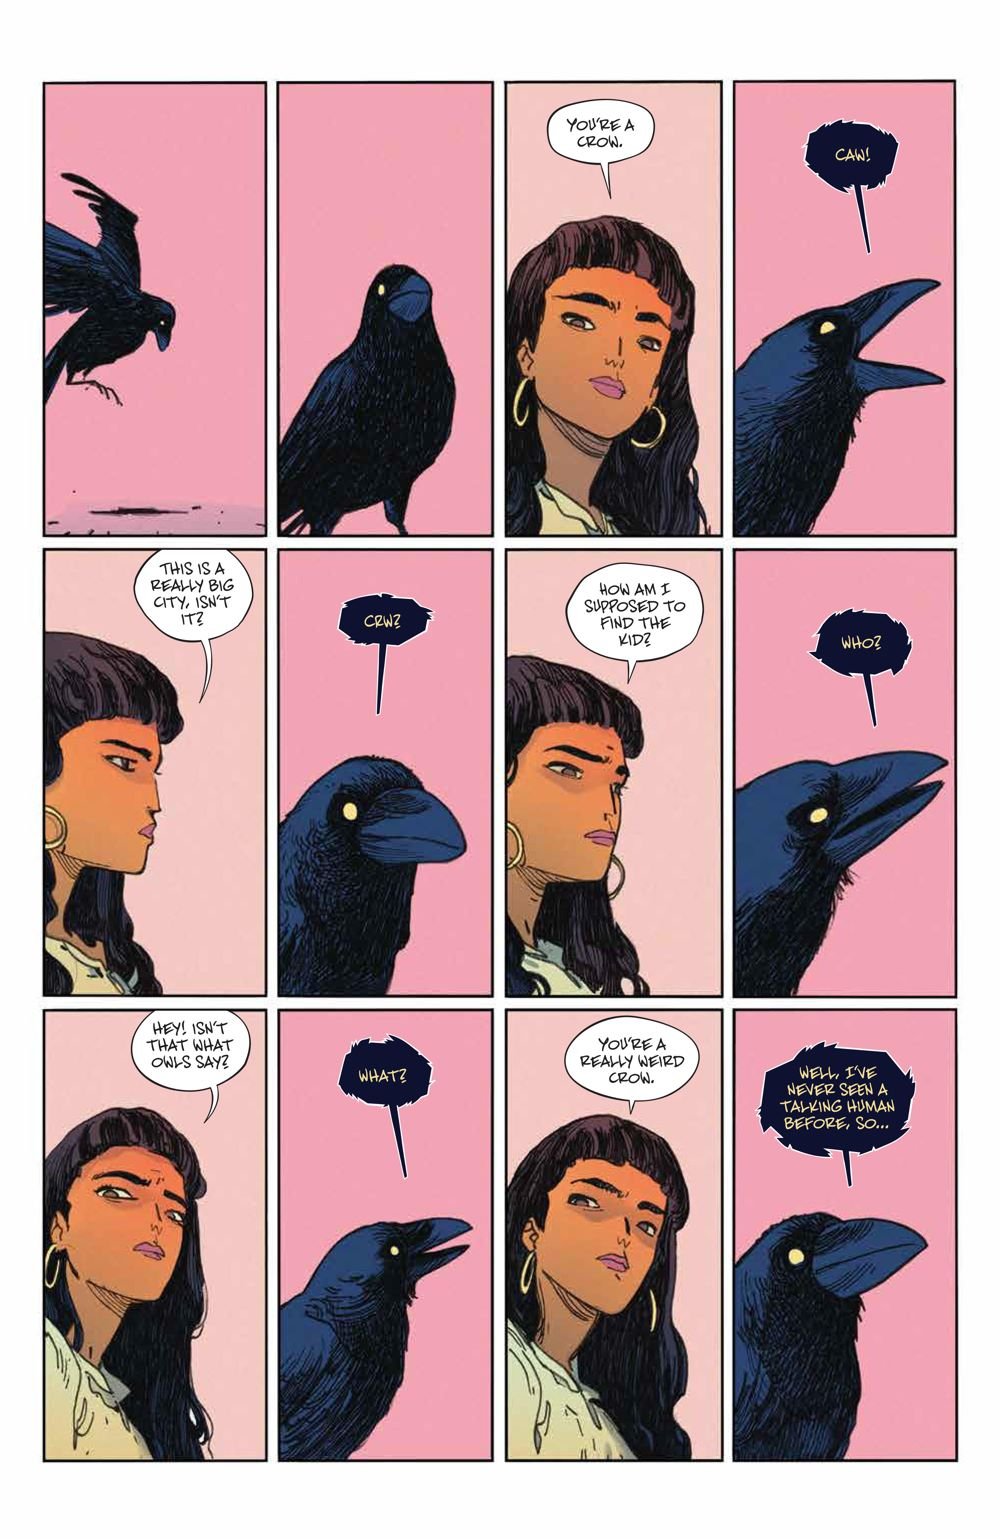 ManyDeathsLailaStarr_002_PRESS_3 ComicList Previews: THE MANY DEATHS OF LAILA STARR #2 (OF 5)